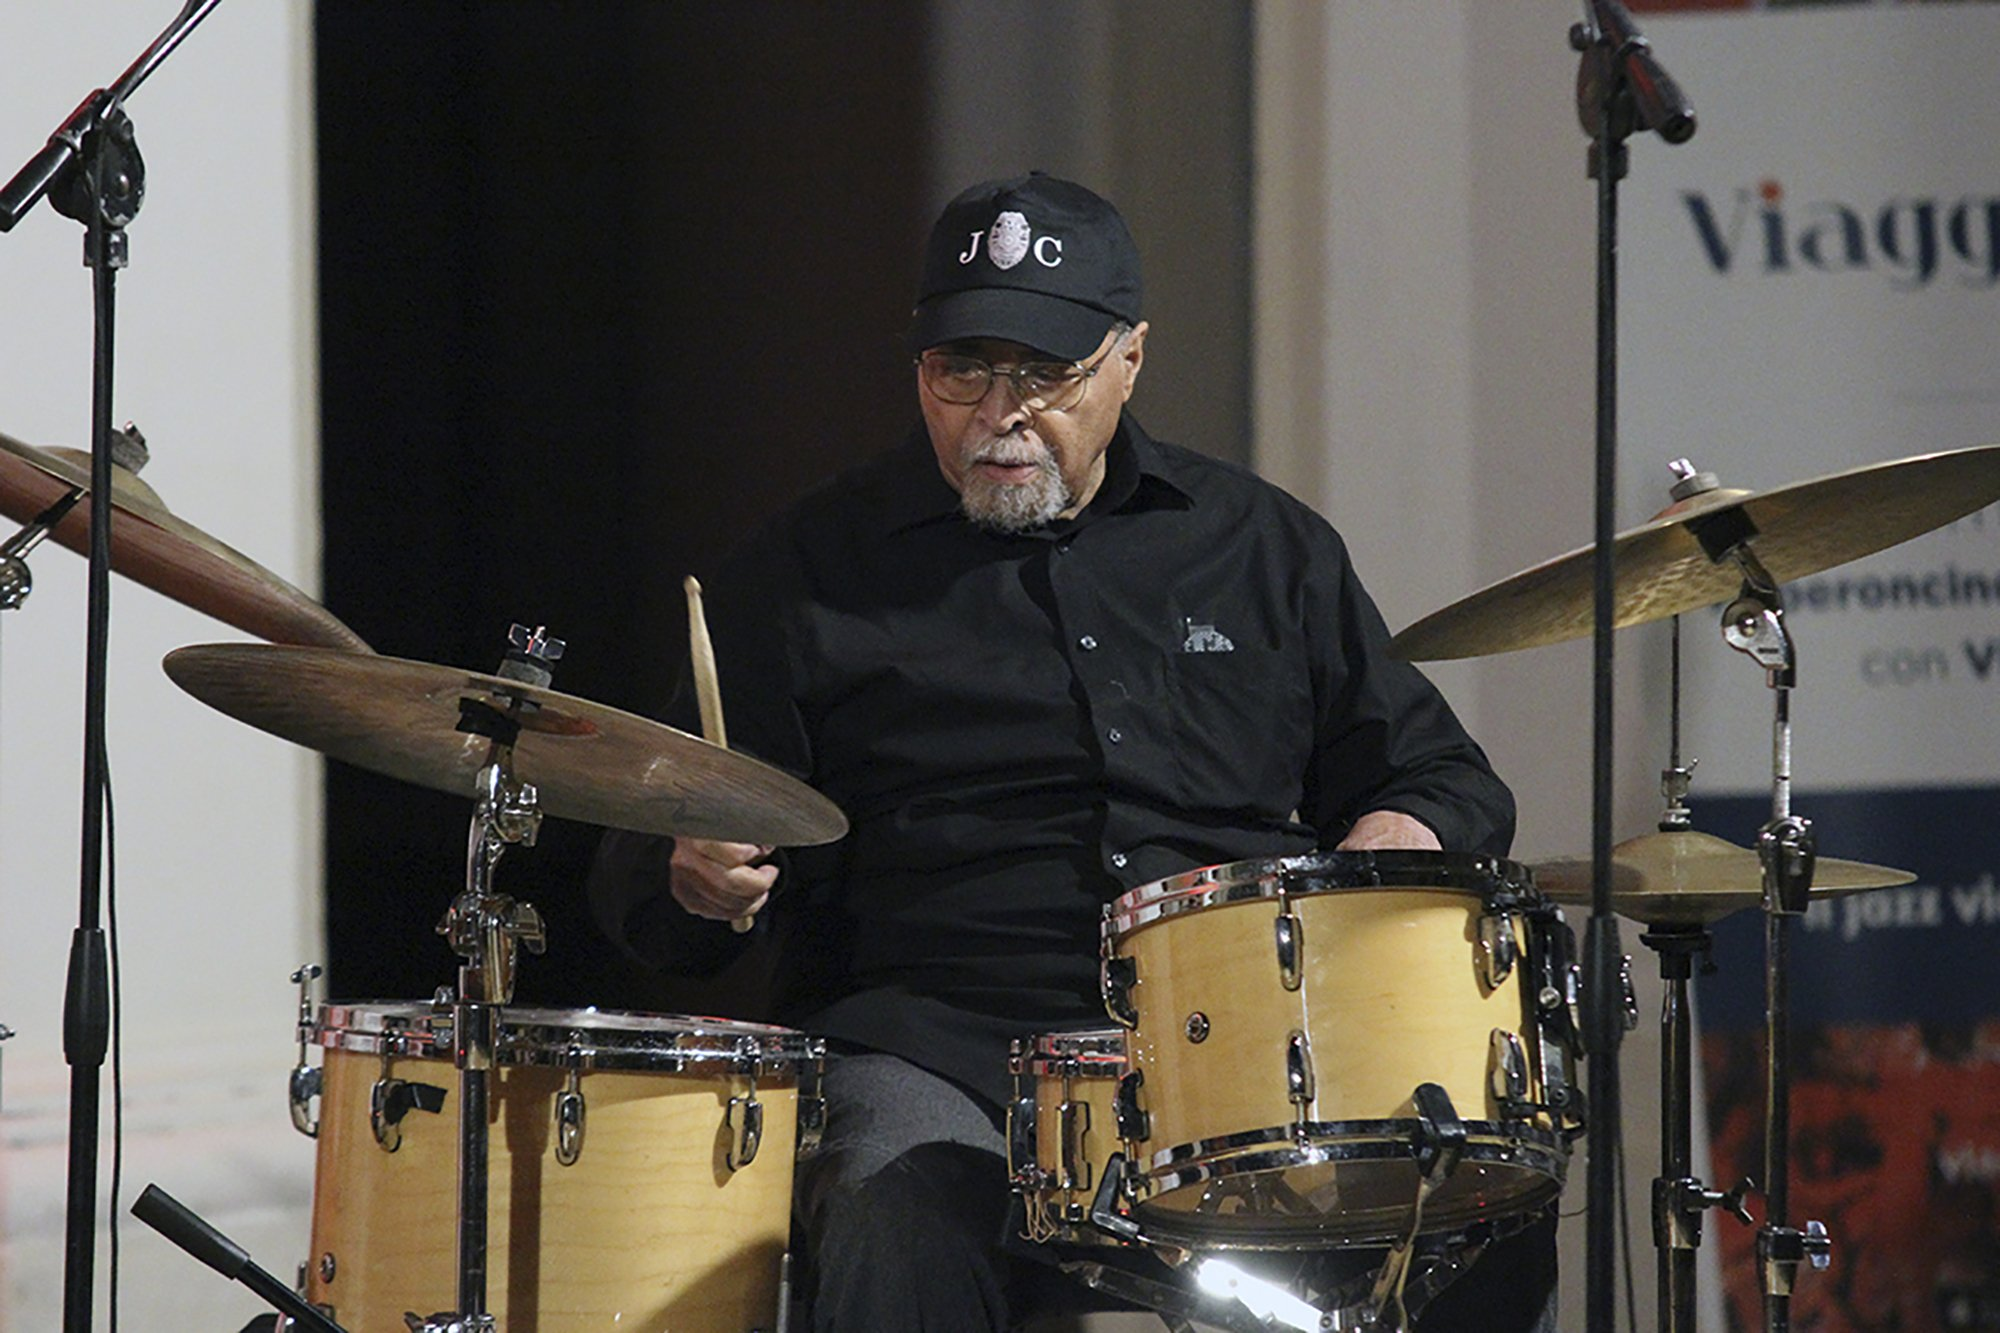 'Kind of Blue' drummer still keeping time as album turns 60